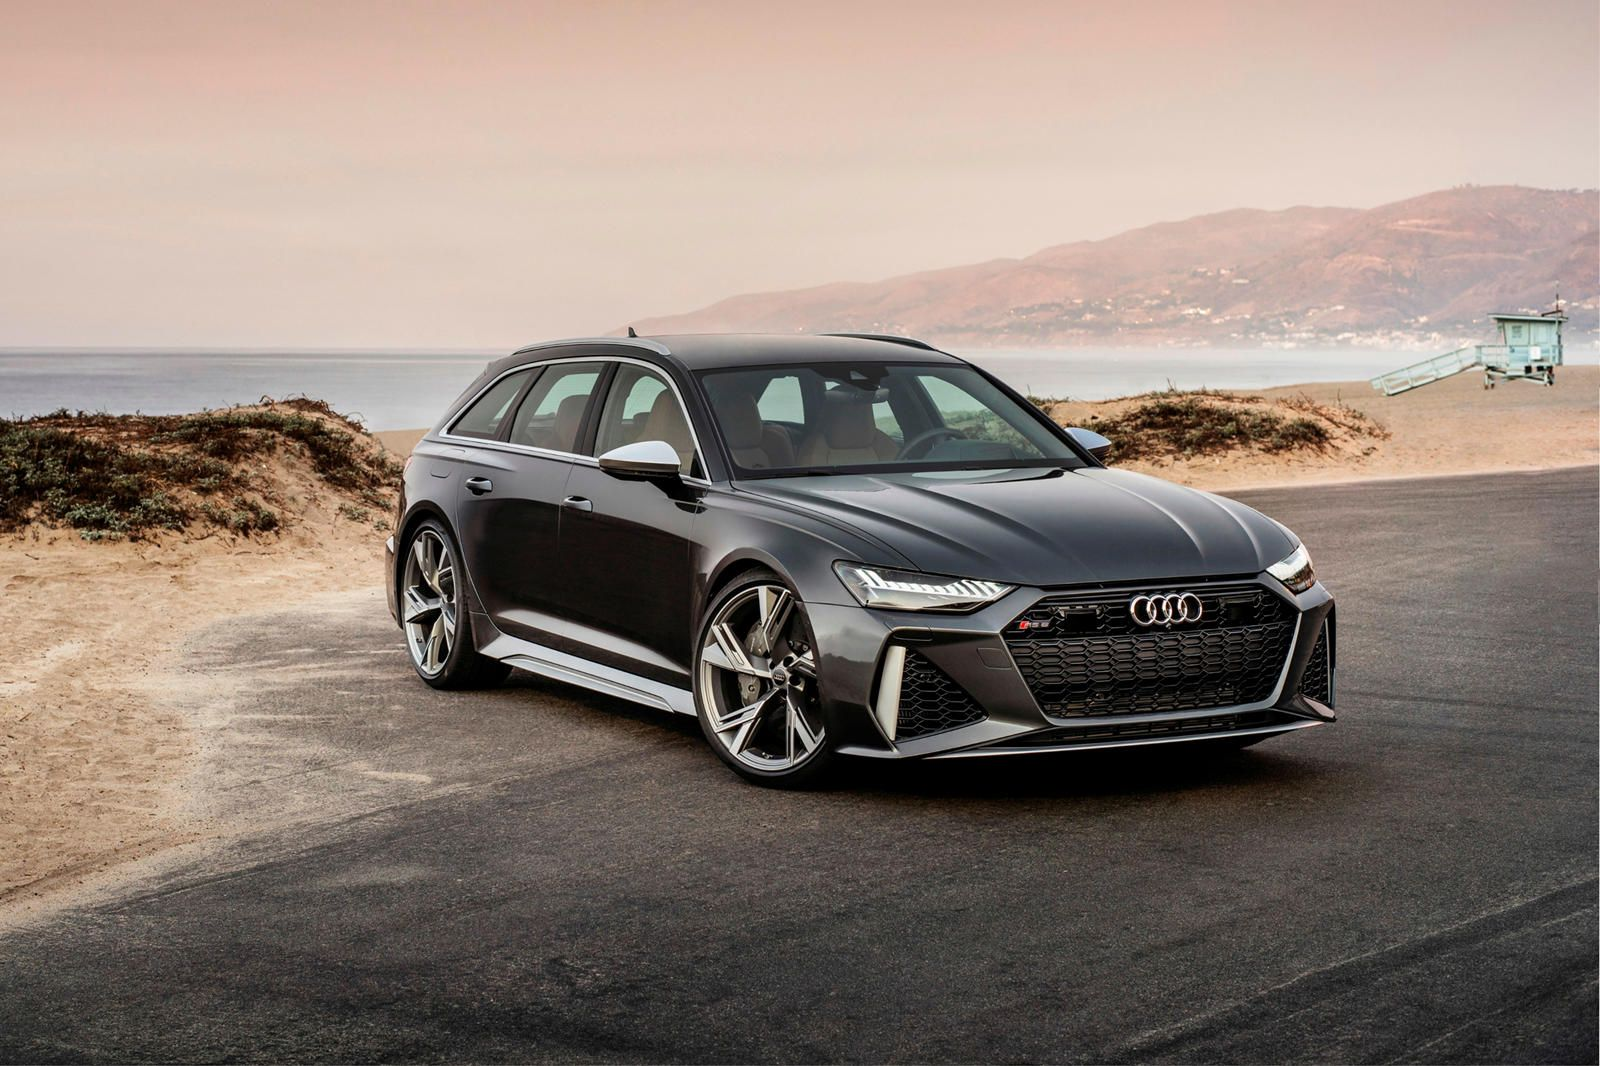 Check Out The New Audi Rs6 Avant Test Drive Review Price Details Trims And Specs Overview Interior Features Exter In 2020 Audi Rs6 Audi Bmw M5 Touring